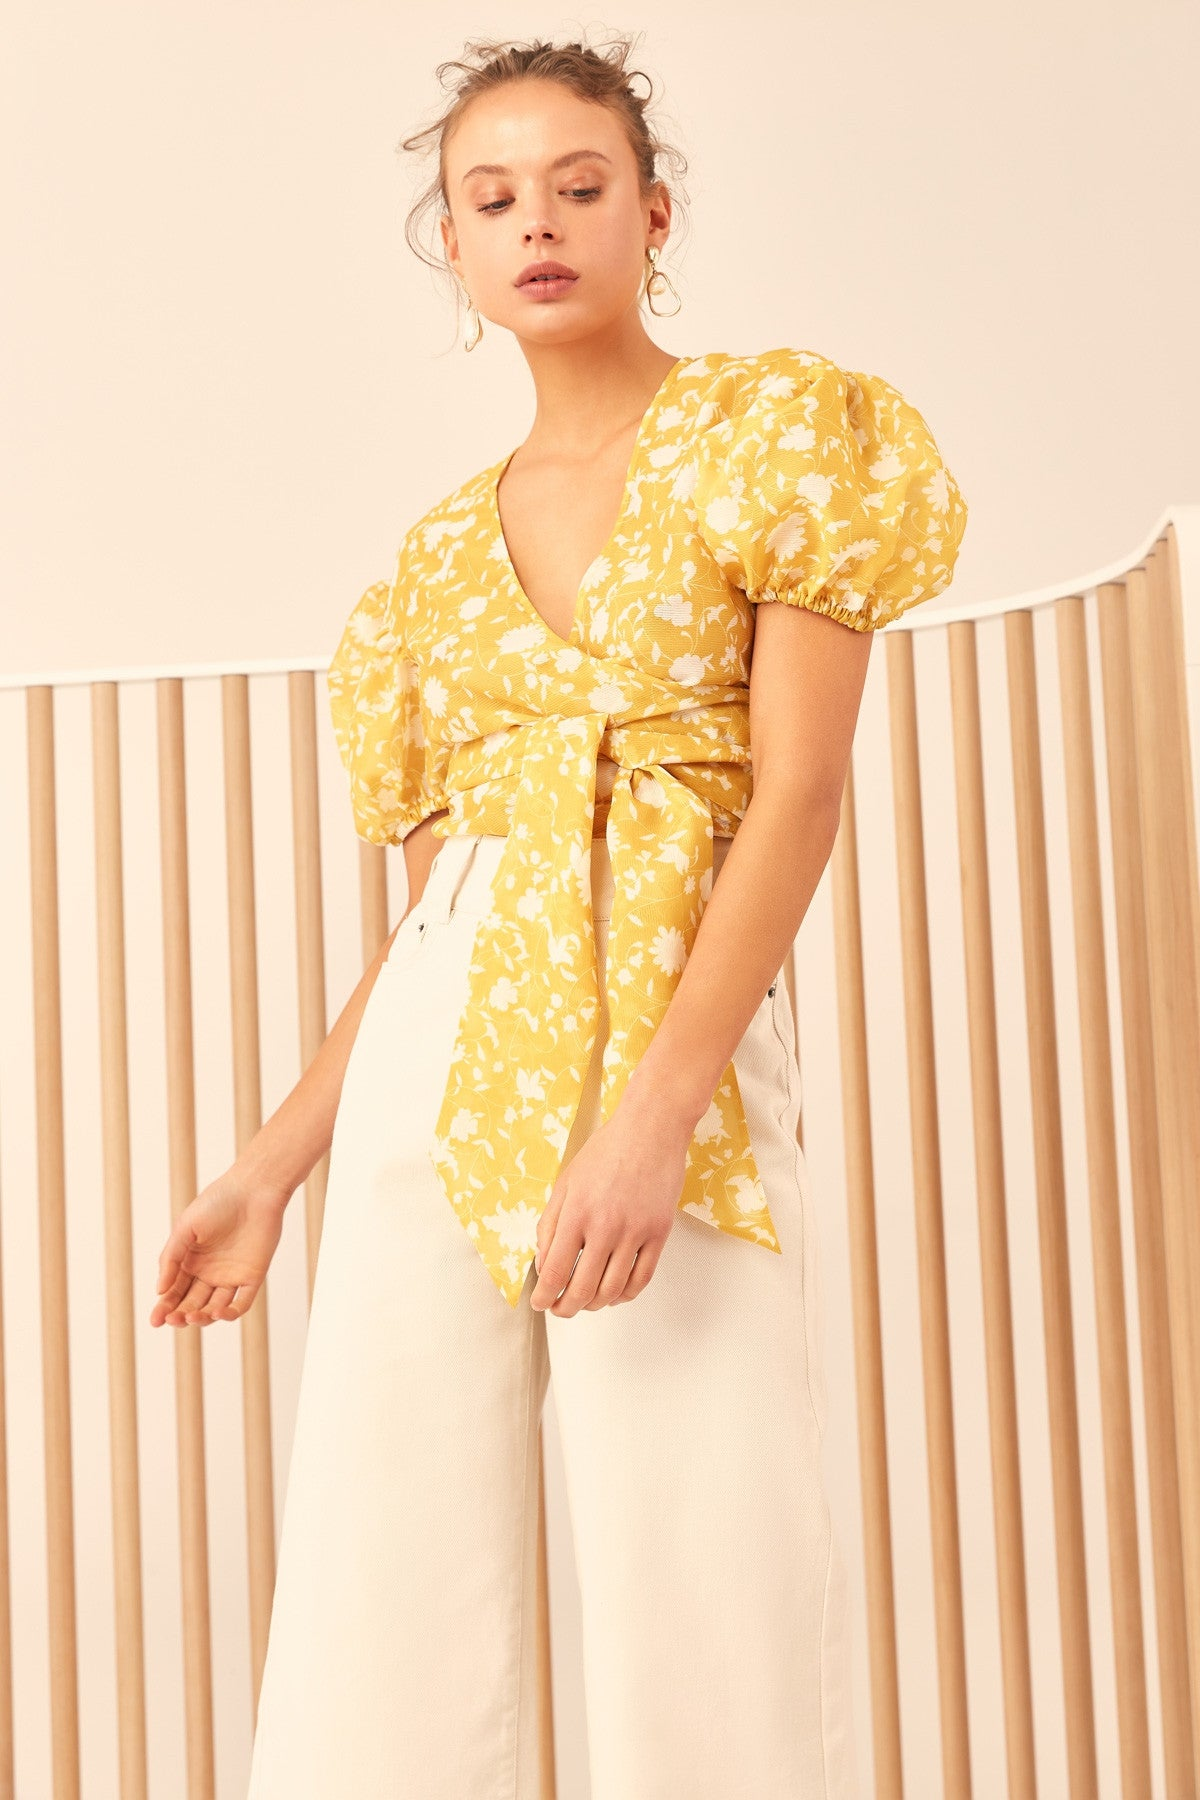 LOVE HATE SHORT SLEEVE TOP yellow floral